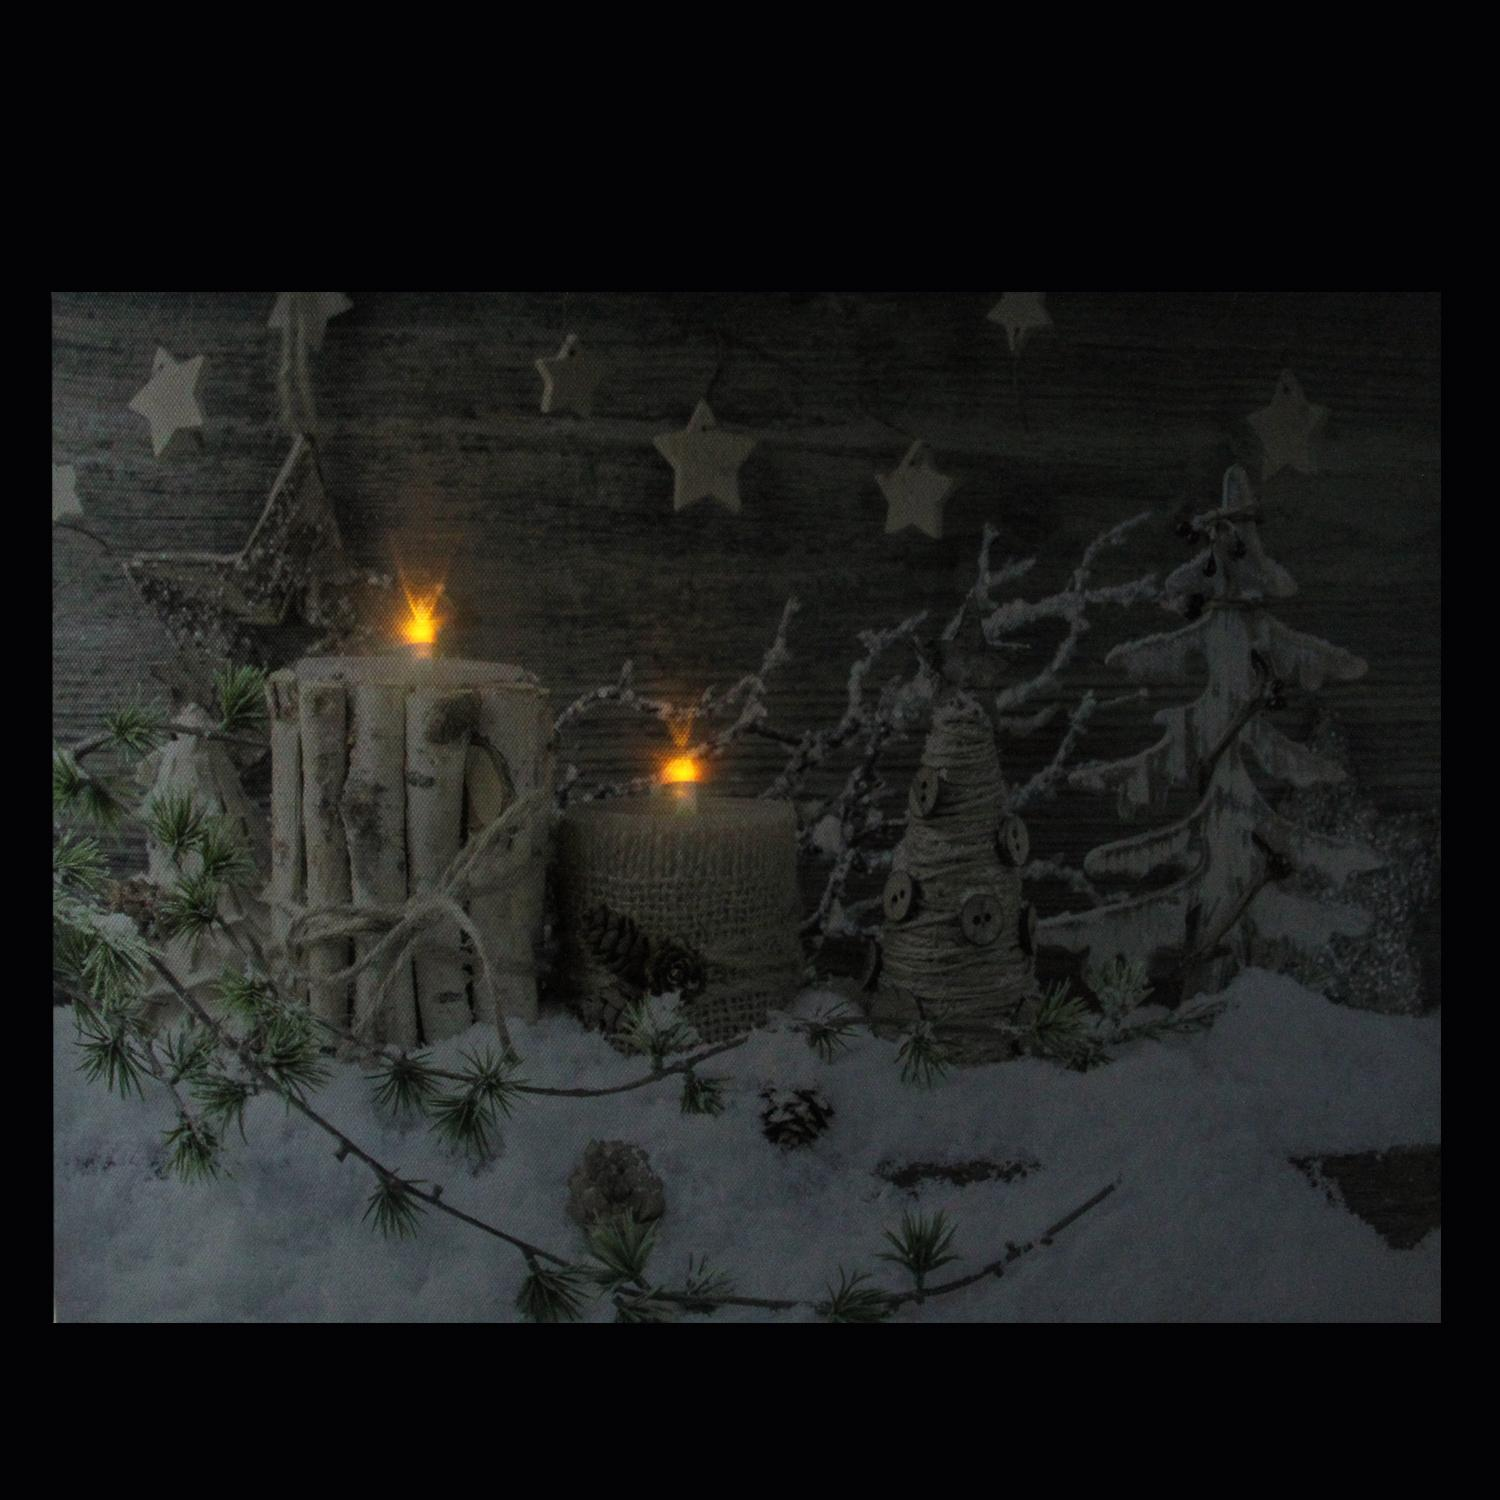 LED Lighted Country Rustic Winter Christmas Canvas Wall